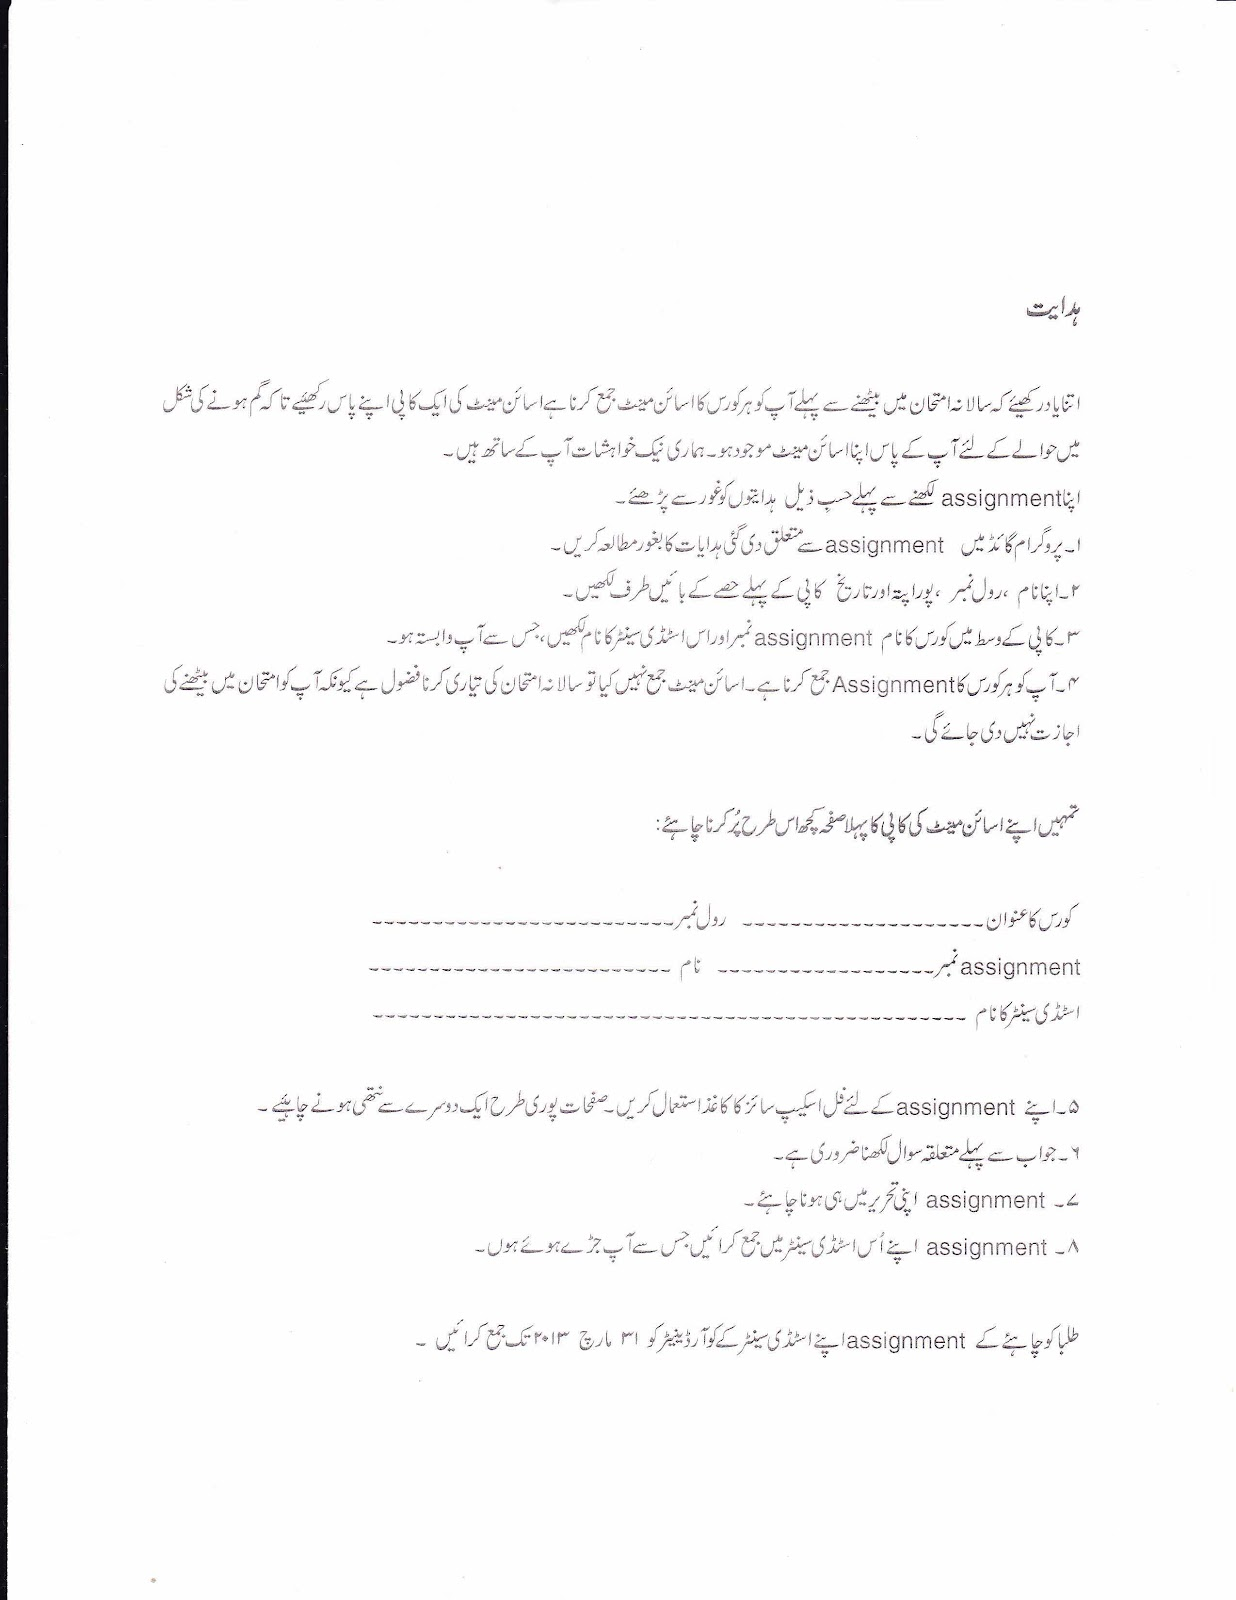 IGNOU Study Centre 0742 D: Assignments of Diploma in Urdu